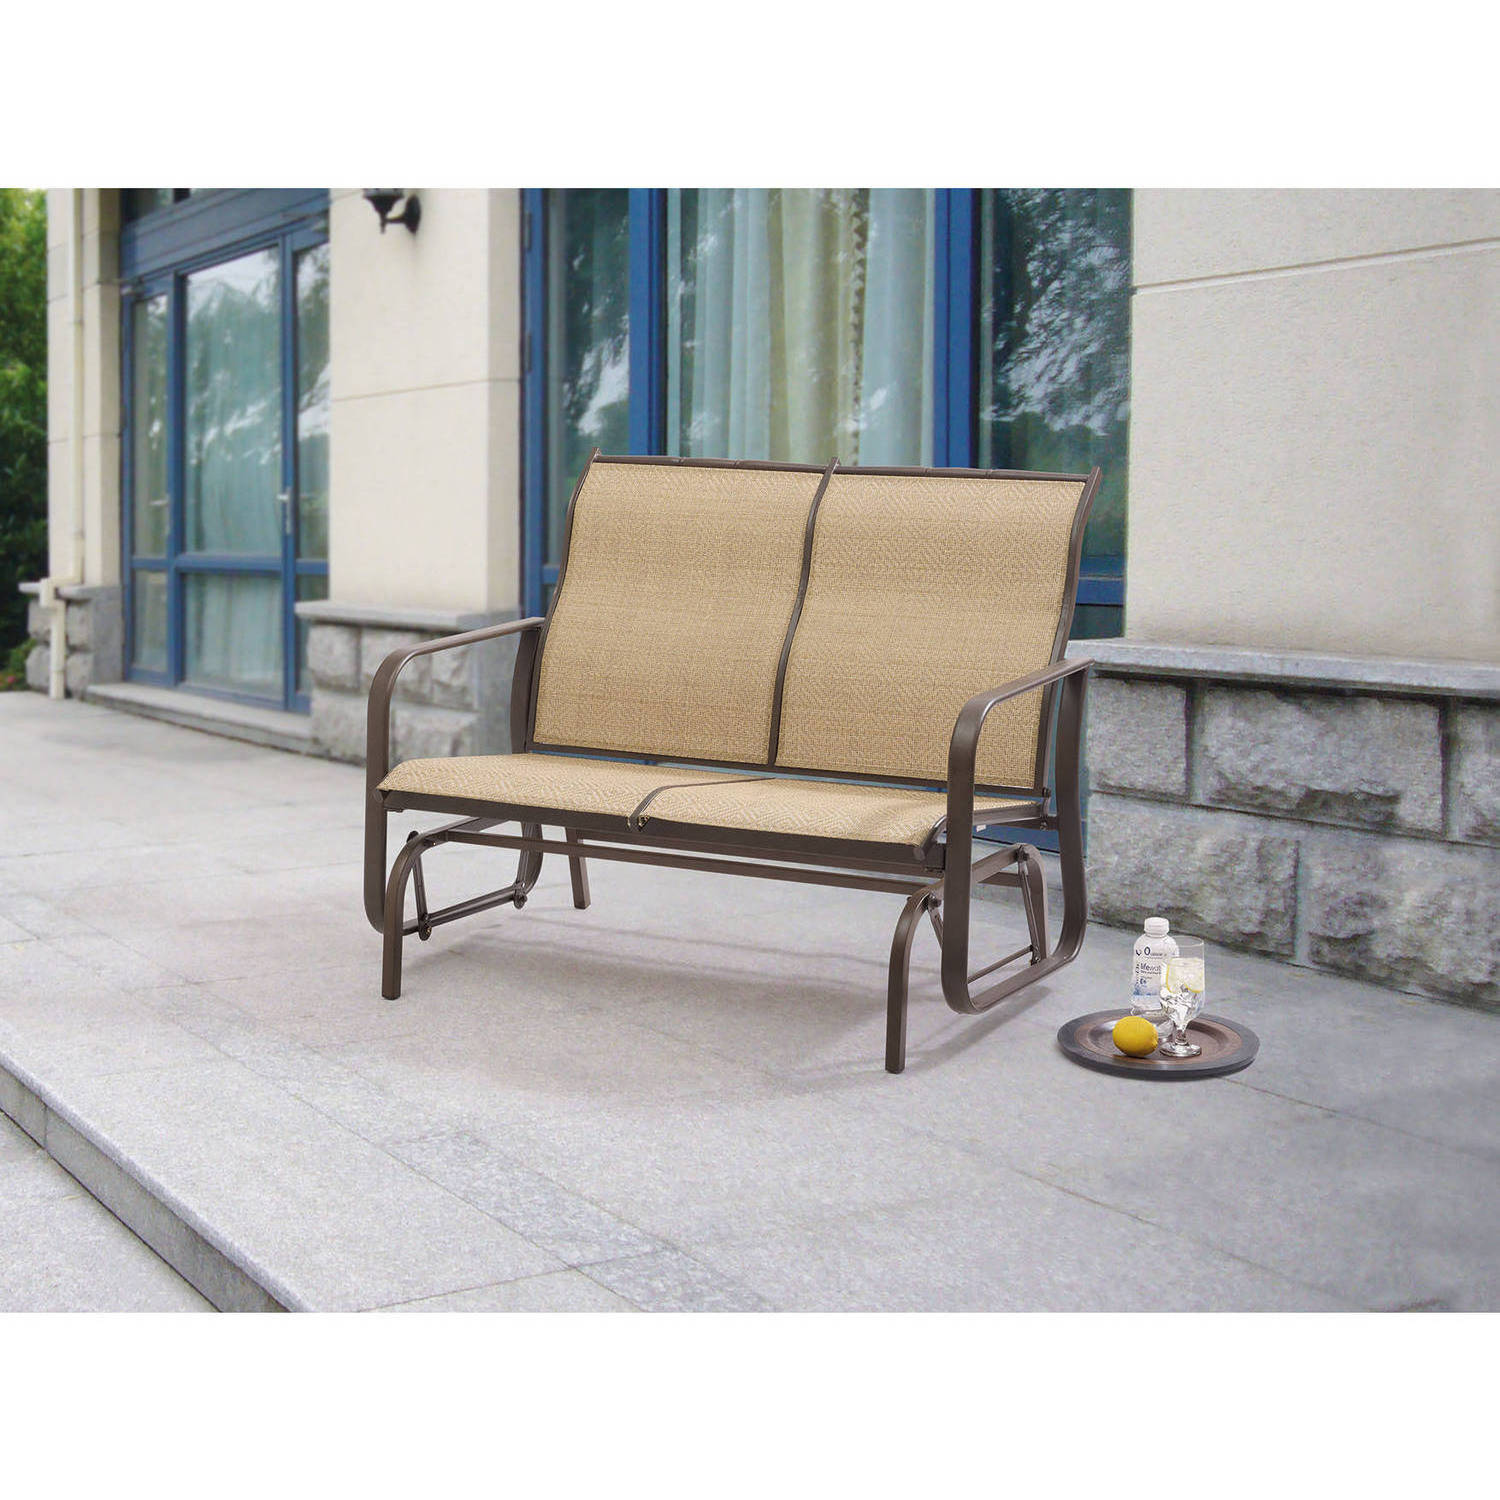 Garden Sofa Two Seater Mainstays Wesley Creek 2 Seat Outdoor Sling Seat Glider